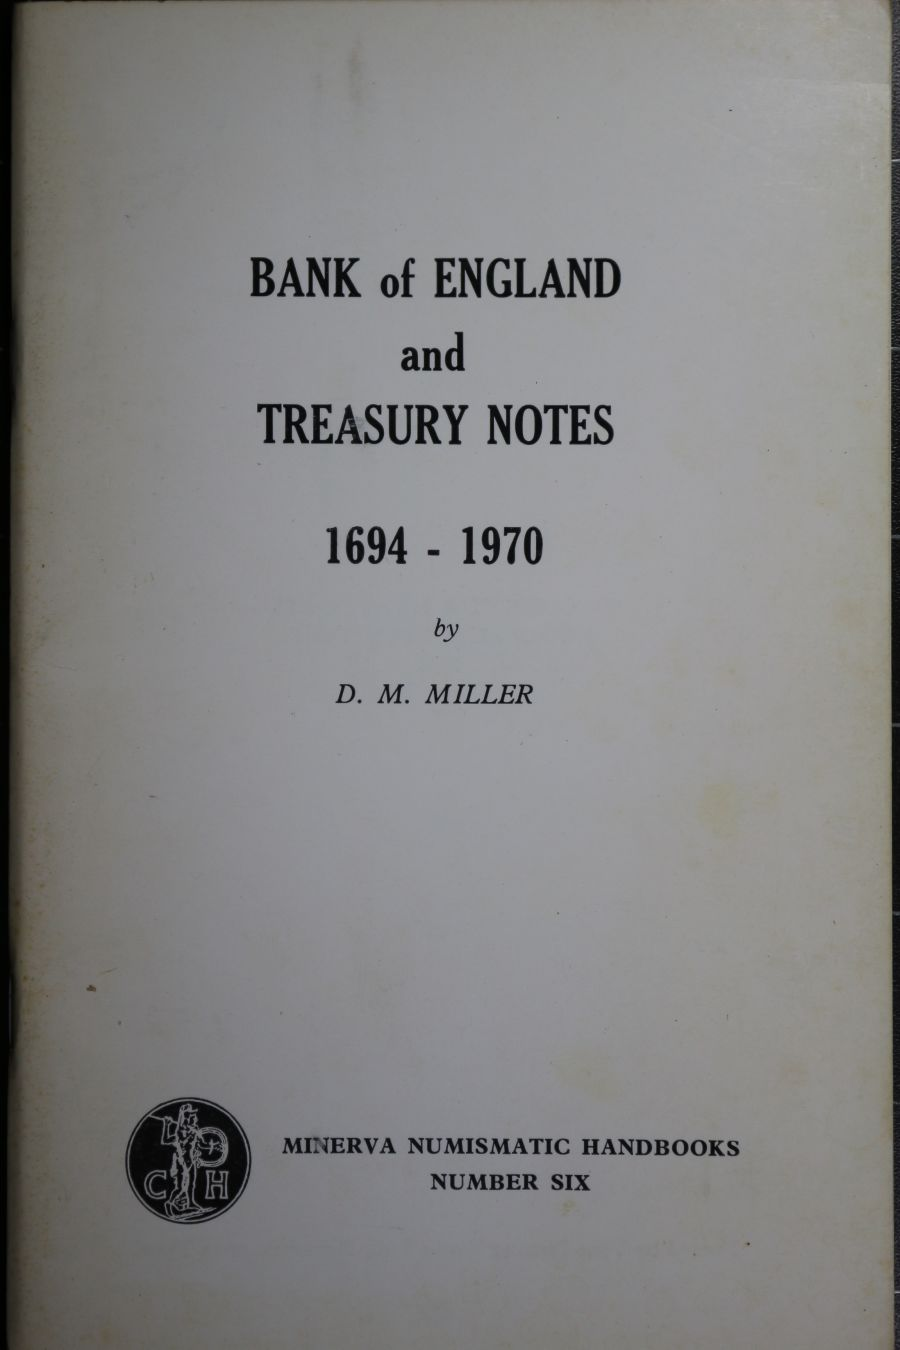 Bank of England and Teasury notes 1694 - 1970 by D. M. Miller